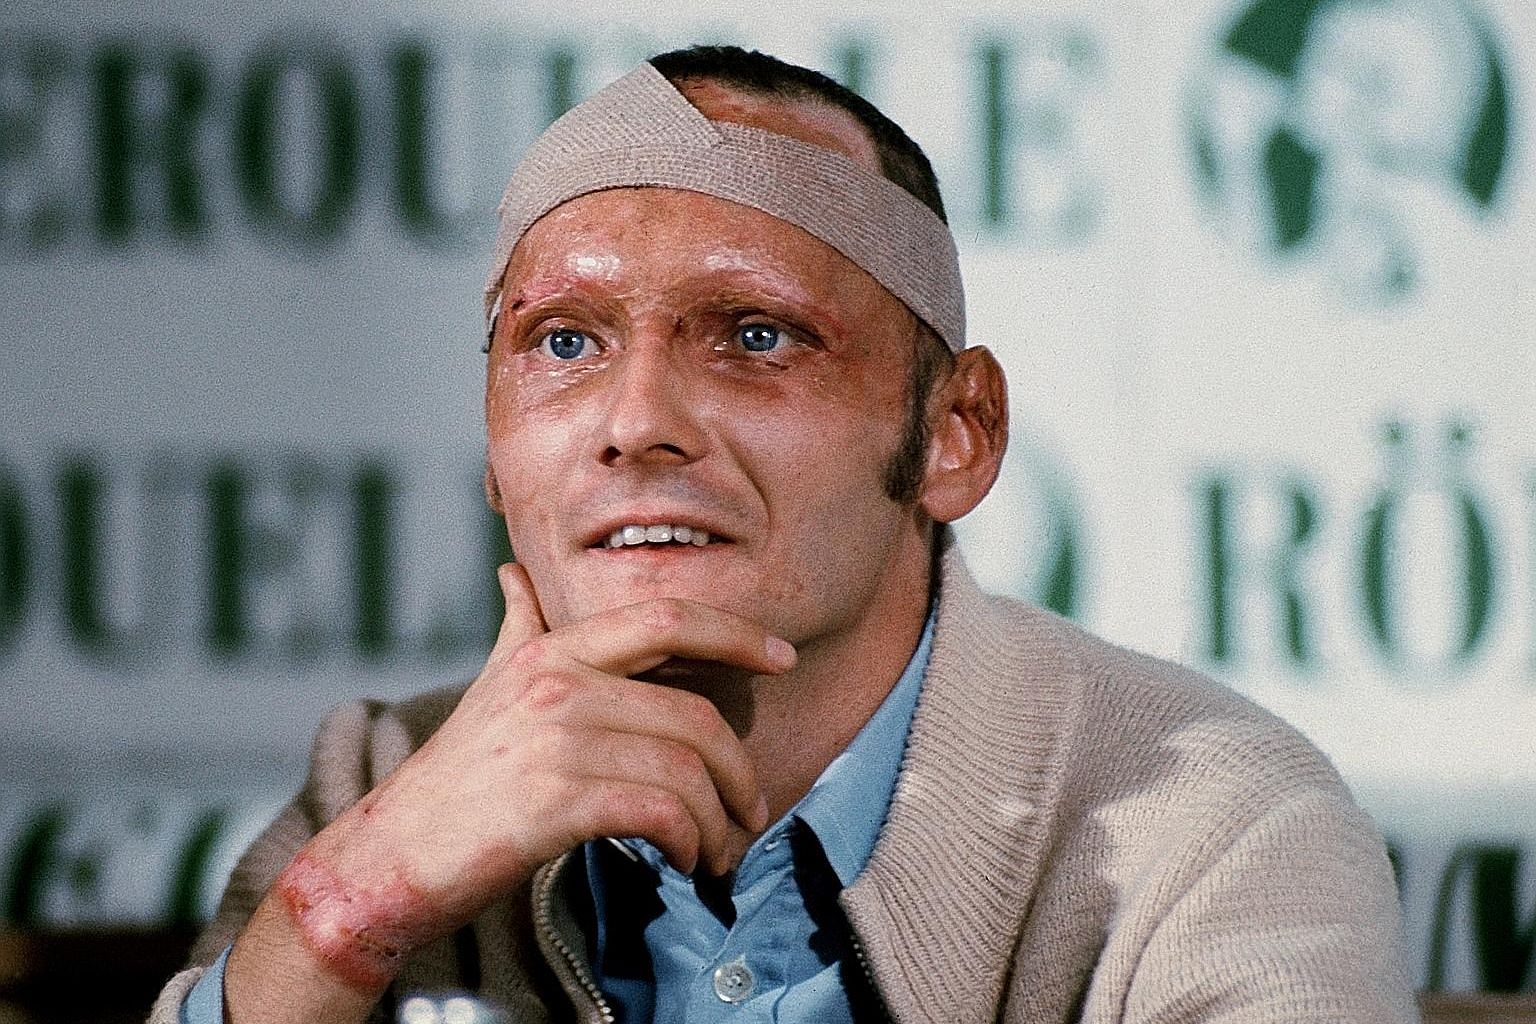 Niki Lauda, bearing the horrific scars of the Nurburgring crash in 1976, returned to racing less than six weeks later. PHOTO: DPA